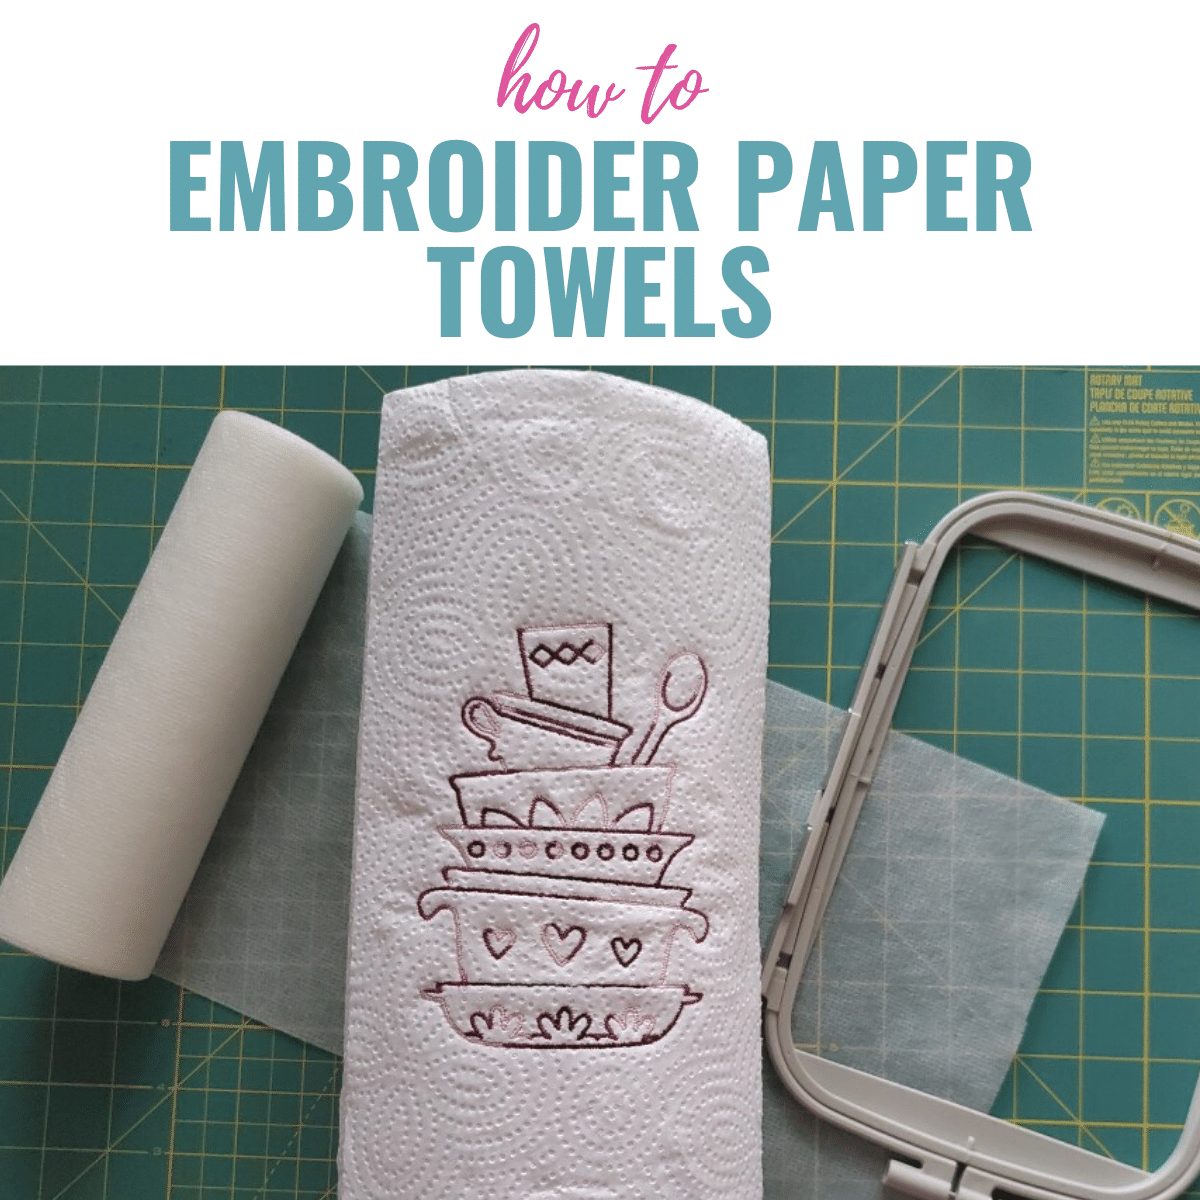 How to Embroider on Paper Towels with Your Machine